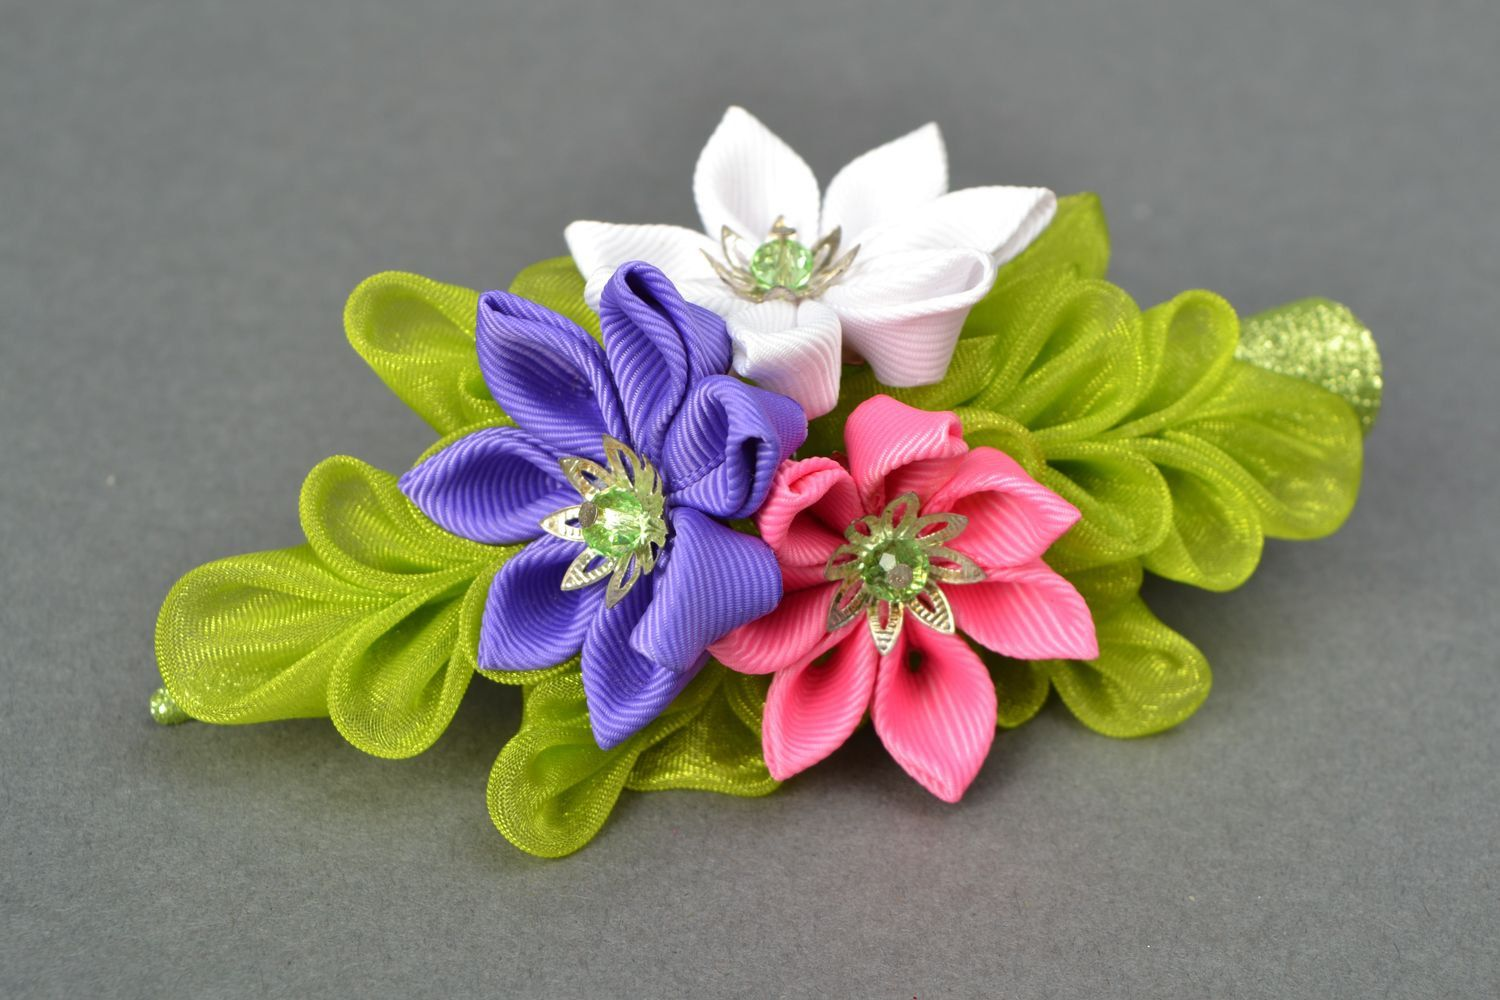 Large kanzashi flower hair clip by YourHairStyle on Etsy